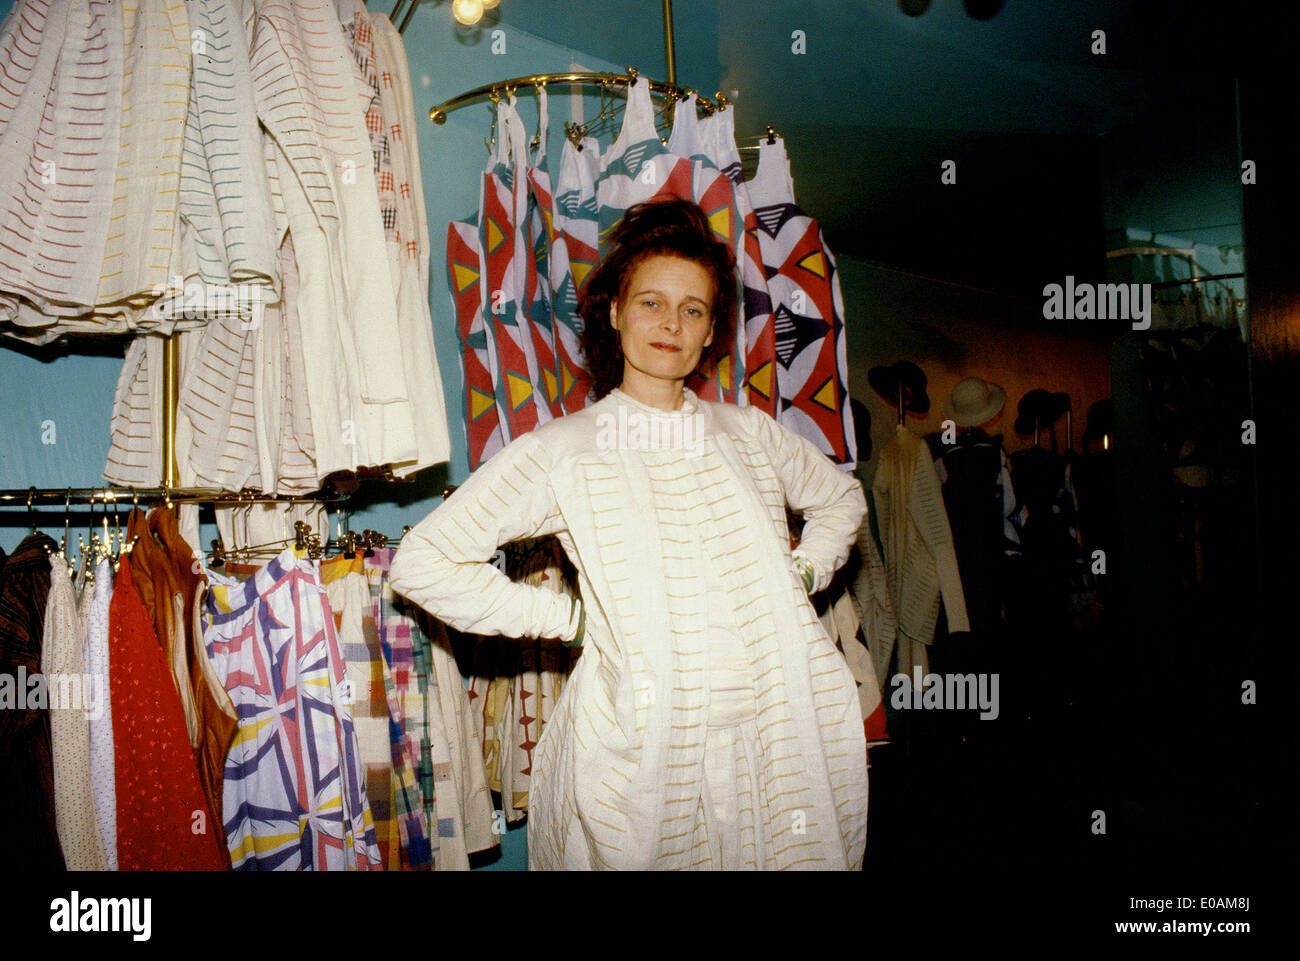 Vivienne Westwood in her Worlds End Shop in Chelsea, London - Stock Image